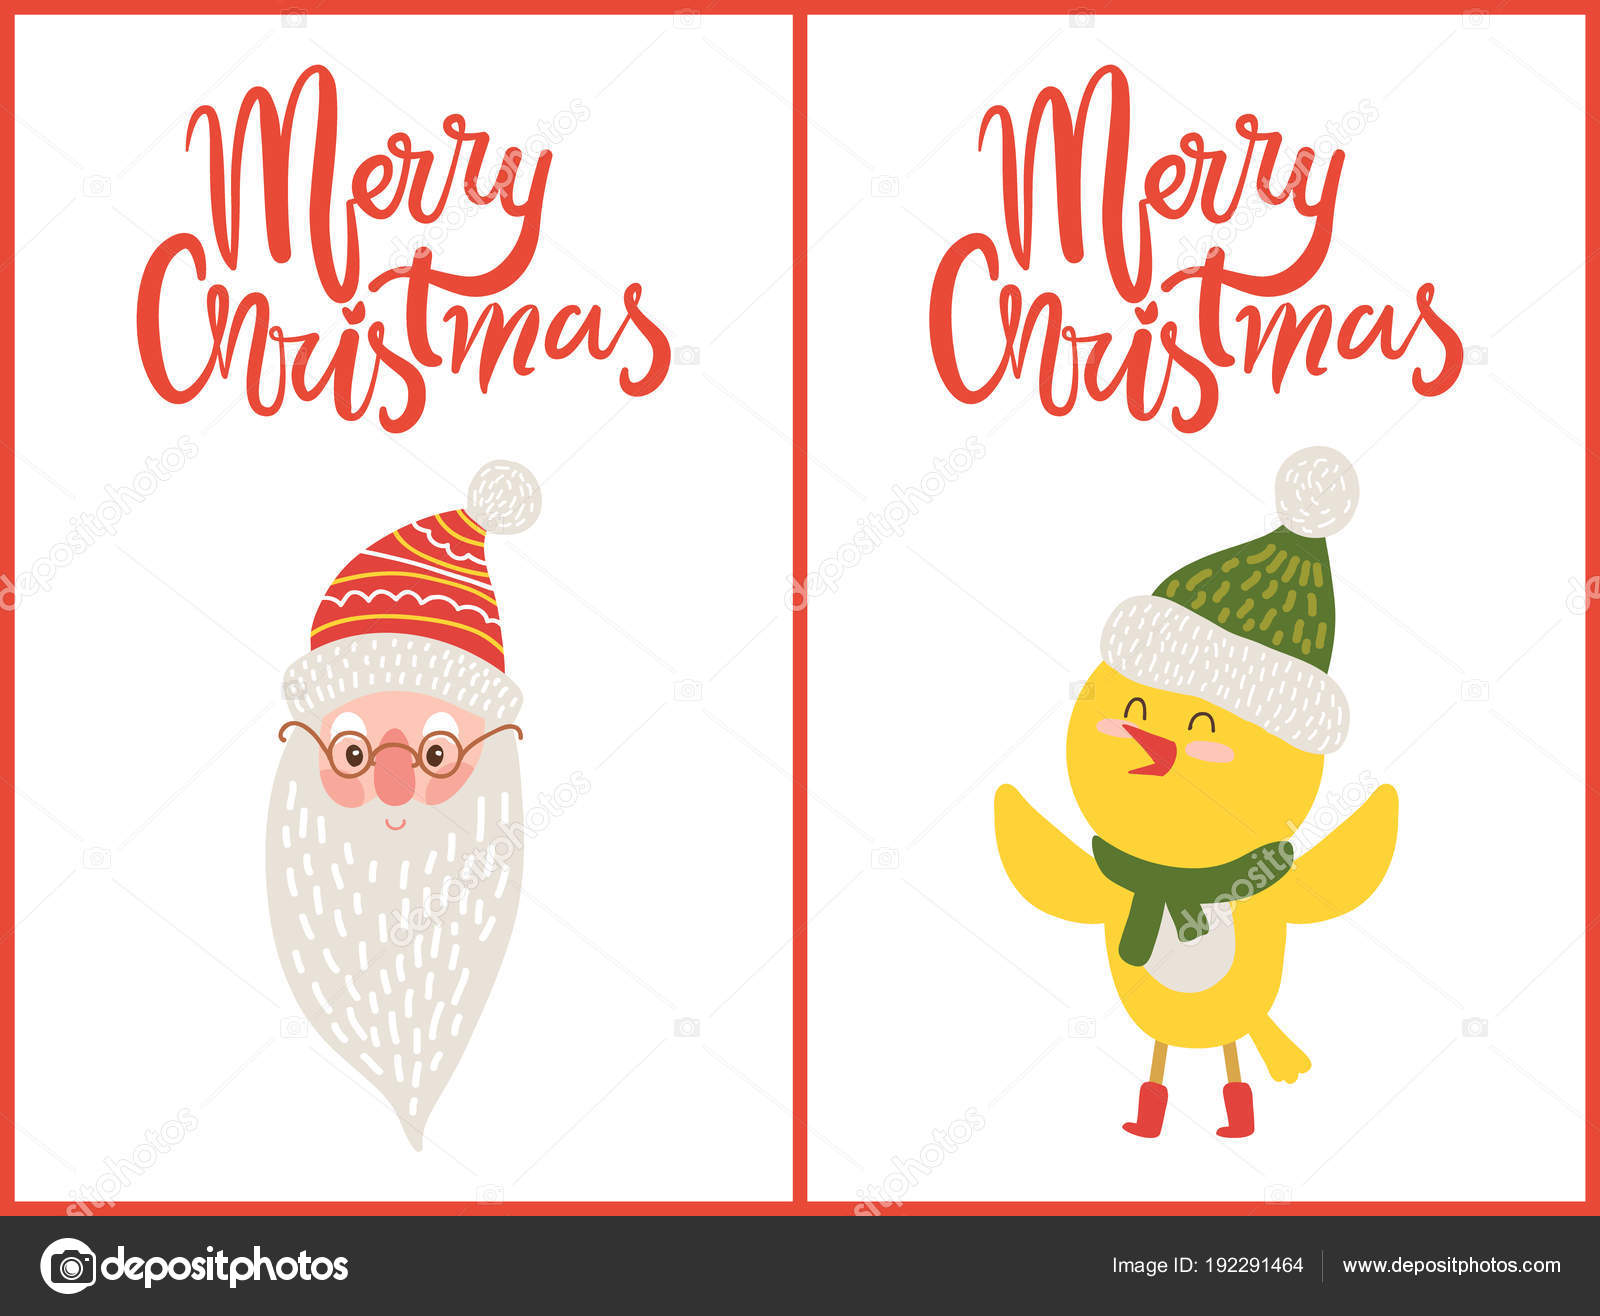 Merry christmas greeting cards santa claus chicken stock vector merry christmas greeting cards santa claus chicken stock vector kristyandbryce Choice Image